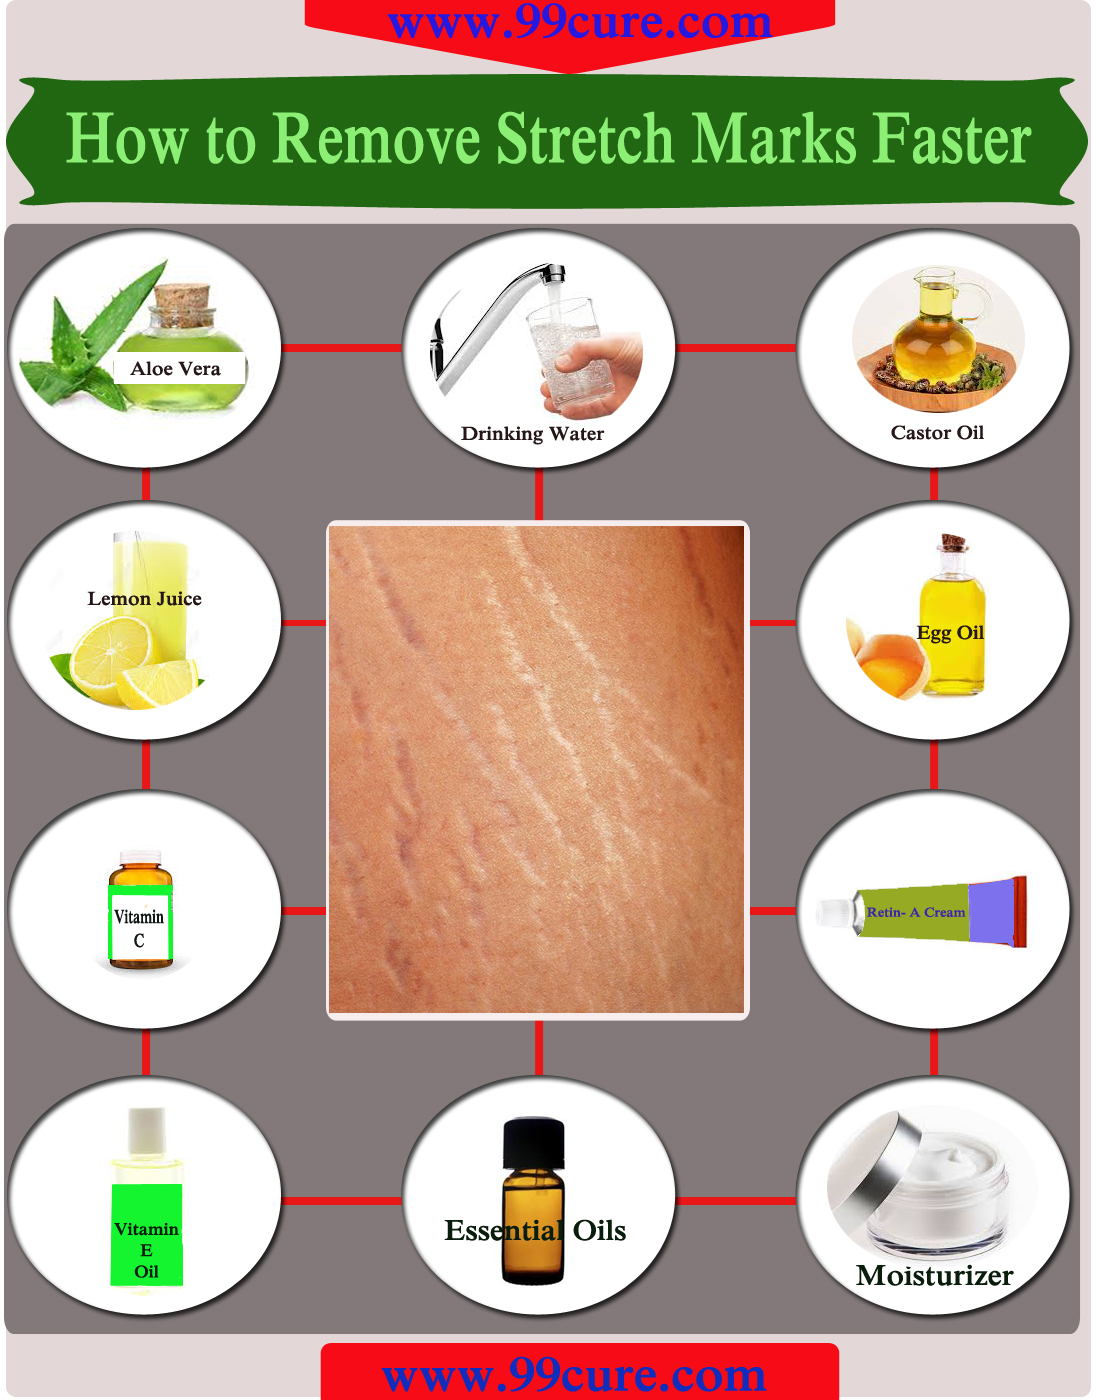 How to Remove Stretch Marks Faster